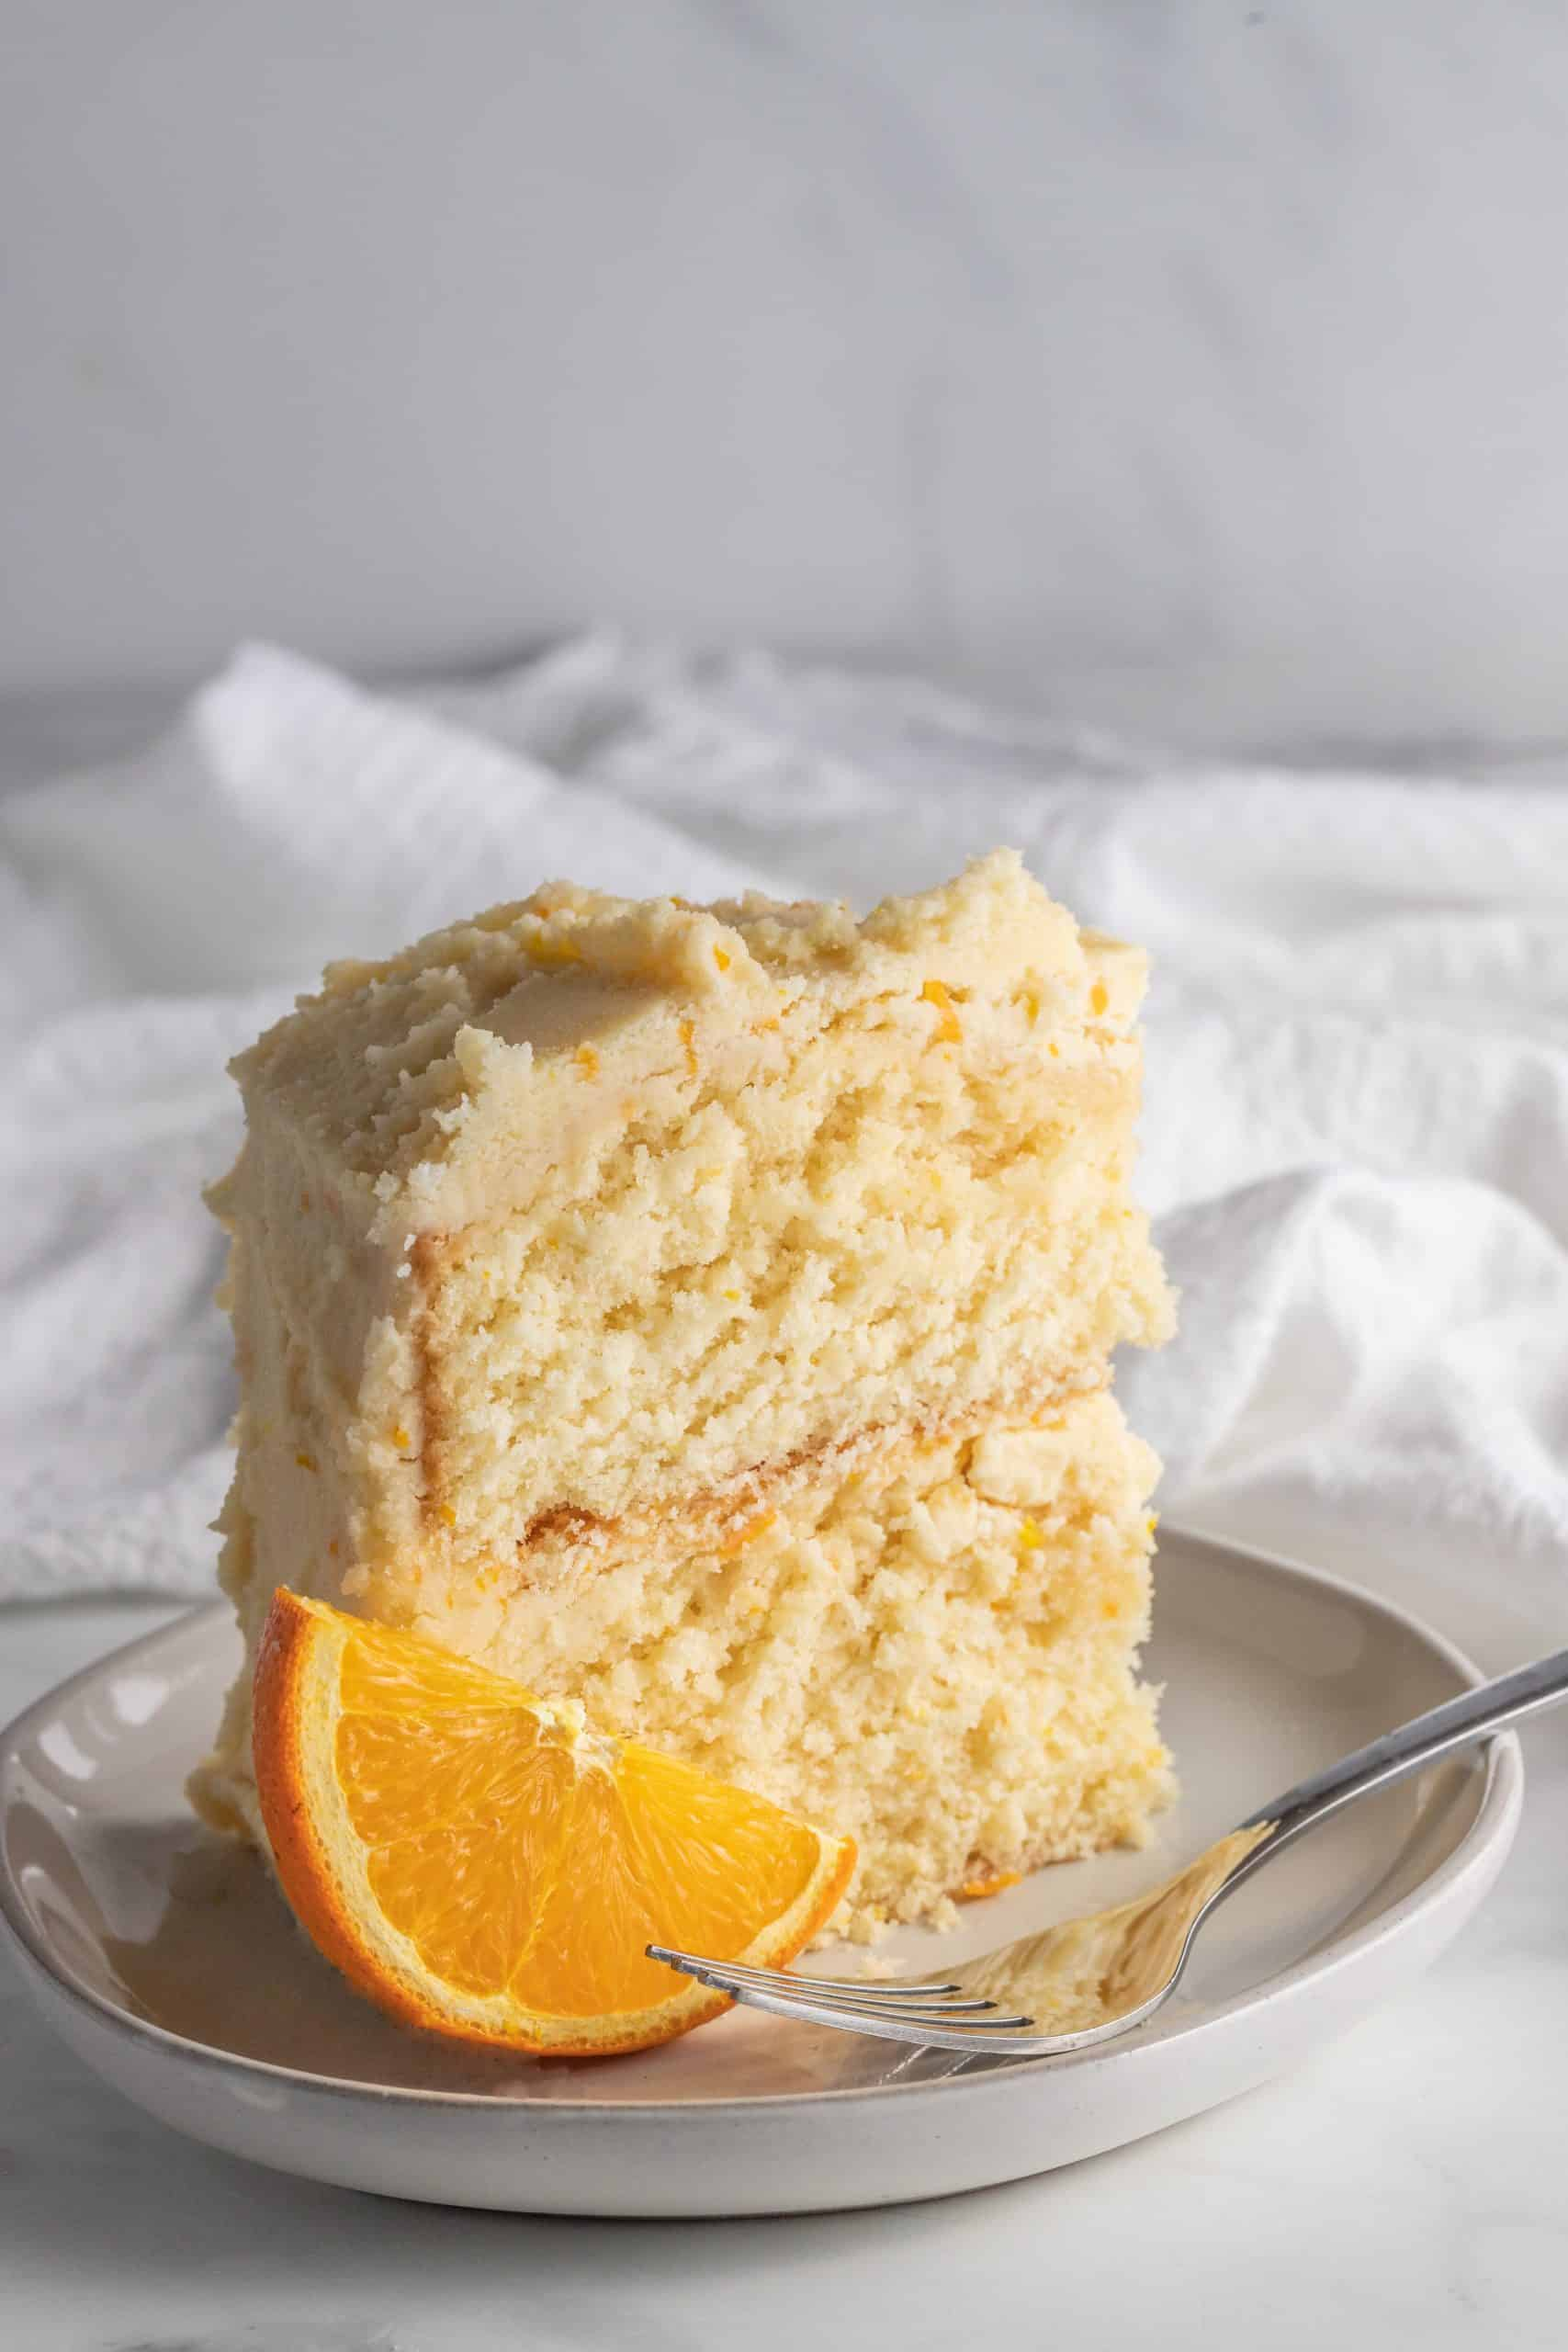 slice of orange creamsicle cake upright on a plate with a fork